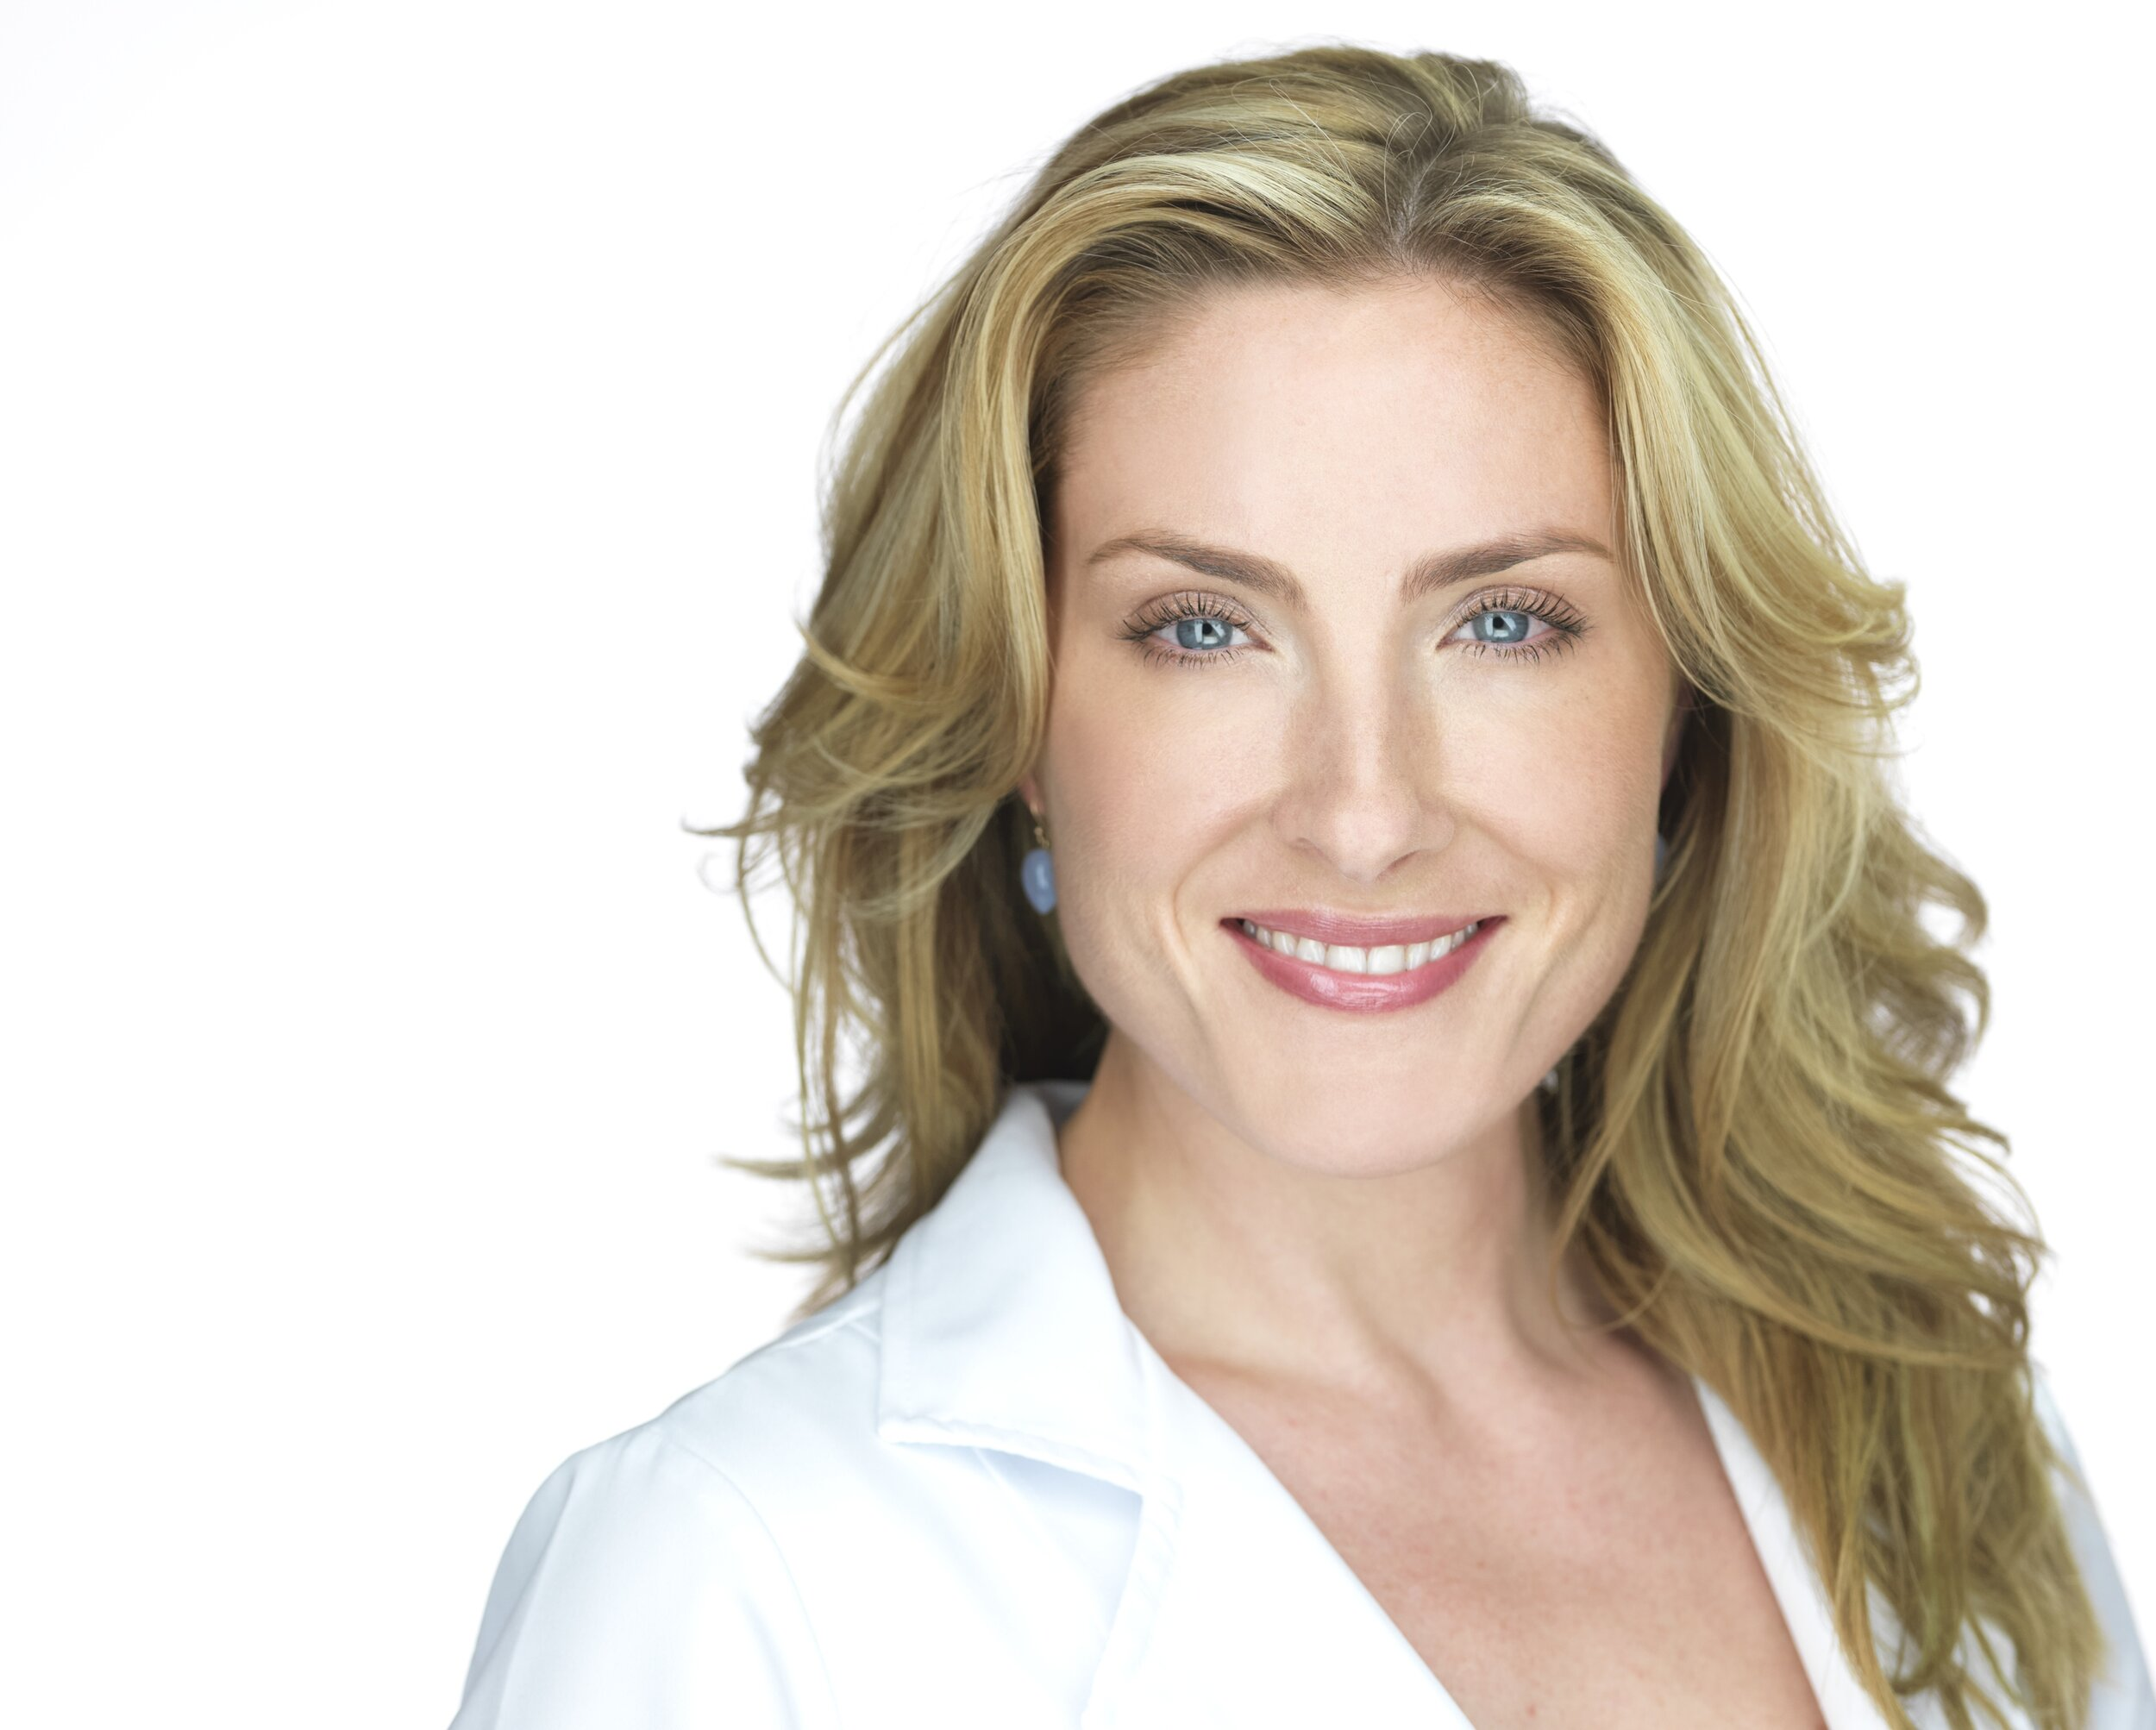 Dr. Erin Gilbert, MD, PhD, FAAD, one of the skincare experts at Vichy Laboratories.